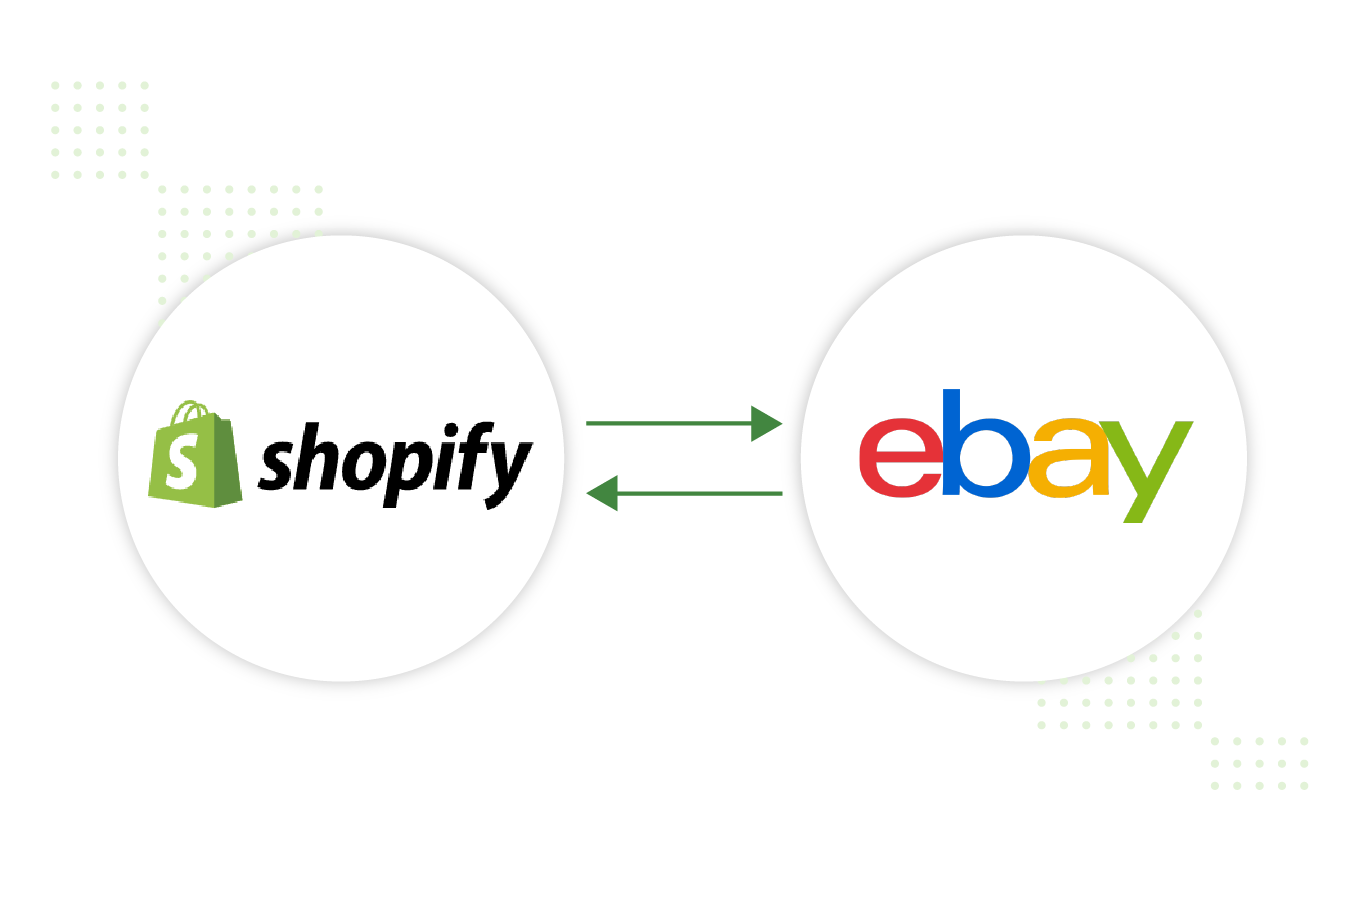 shopify to ebay